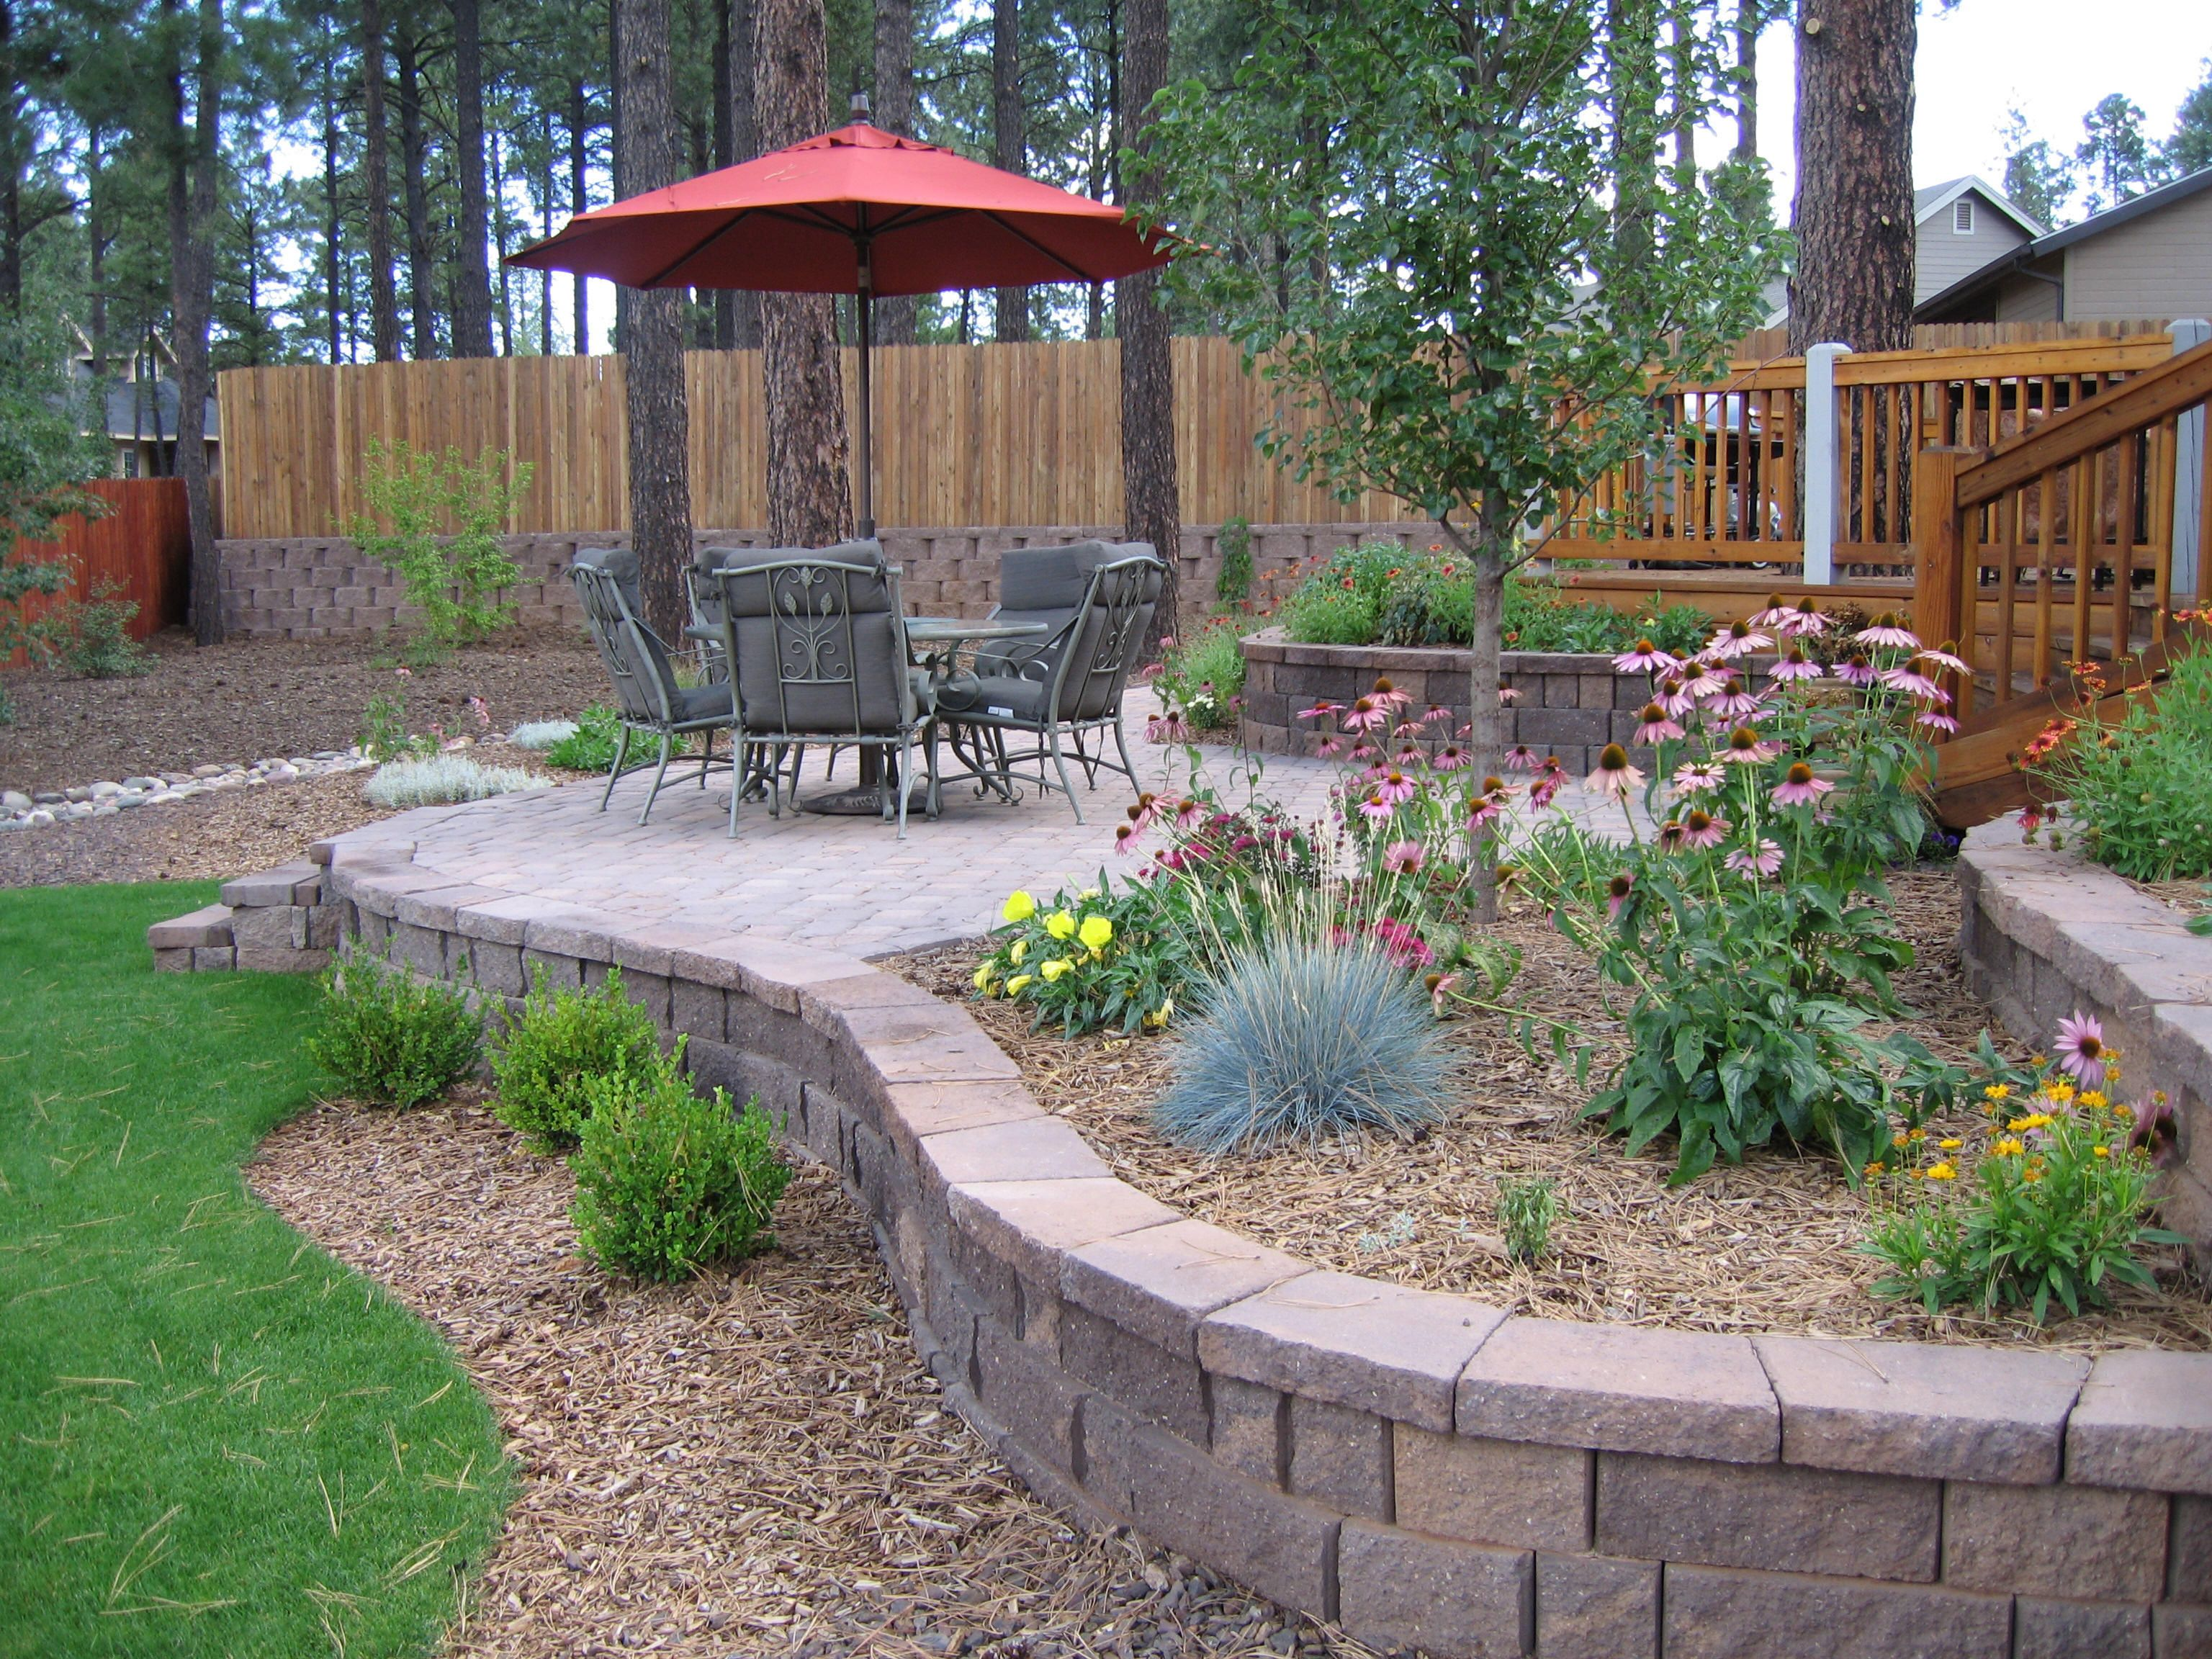 gardening landscaping nice backyard landscape ideas best backyard landscape ideas landscaping backyard ideas kid friendly backyard landscaping ideas - Landscape Design Ideas Backyard